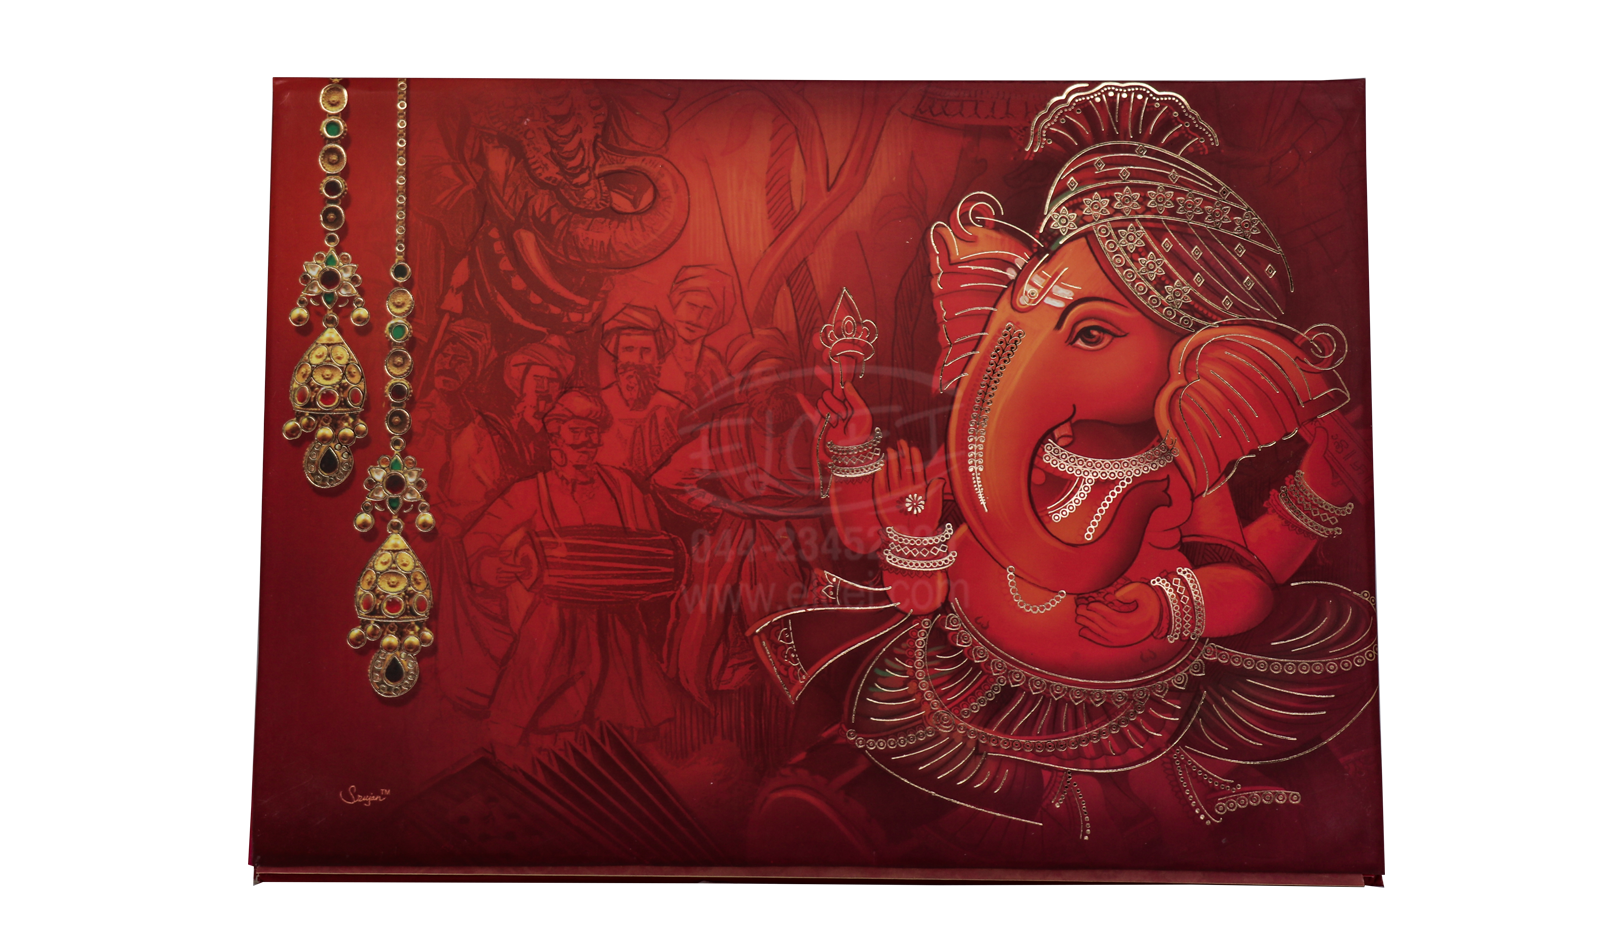 Padding Card With Elaborate Background Design